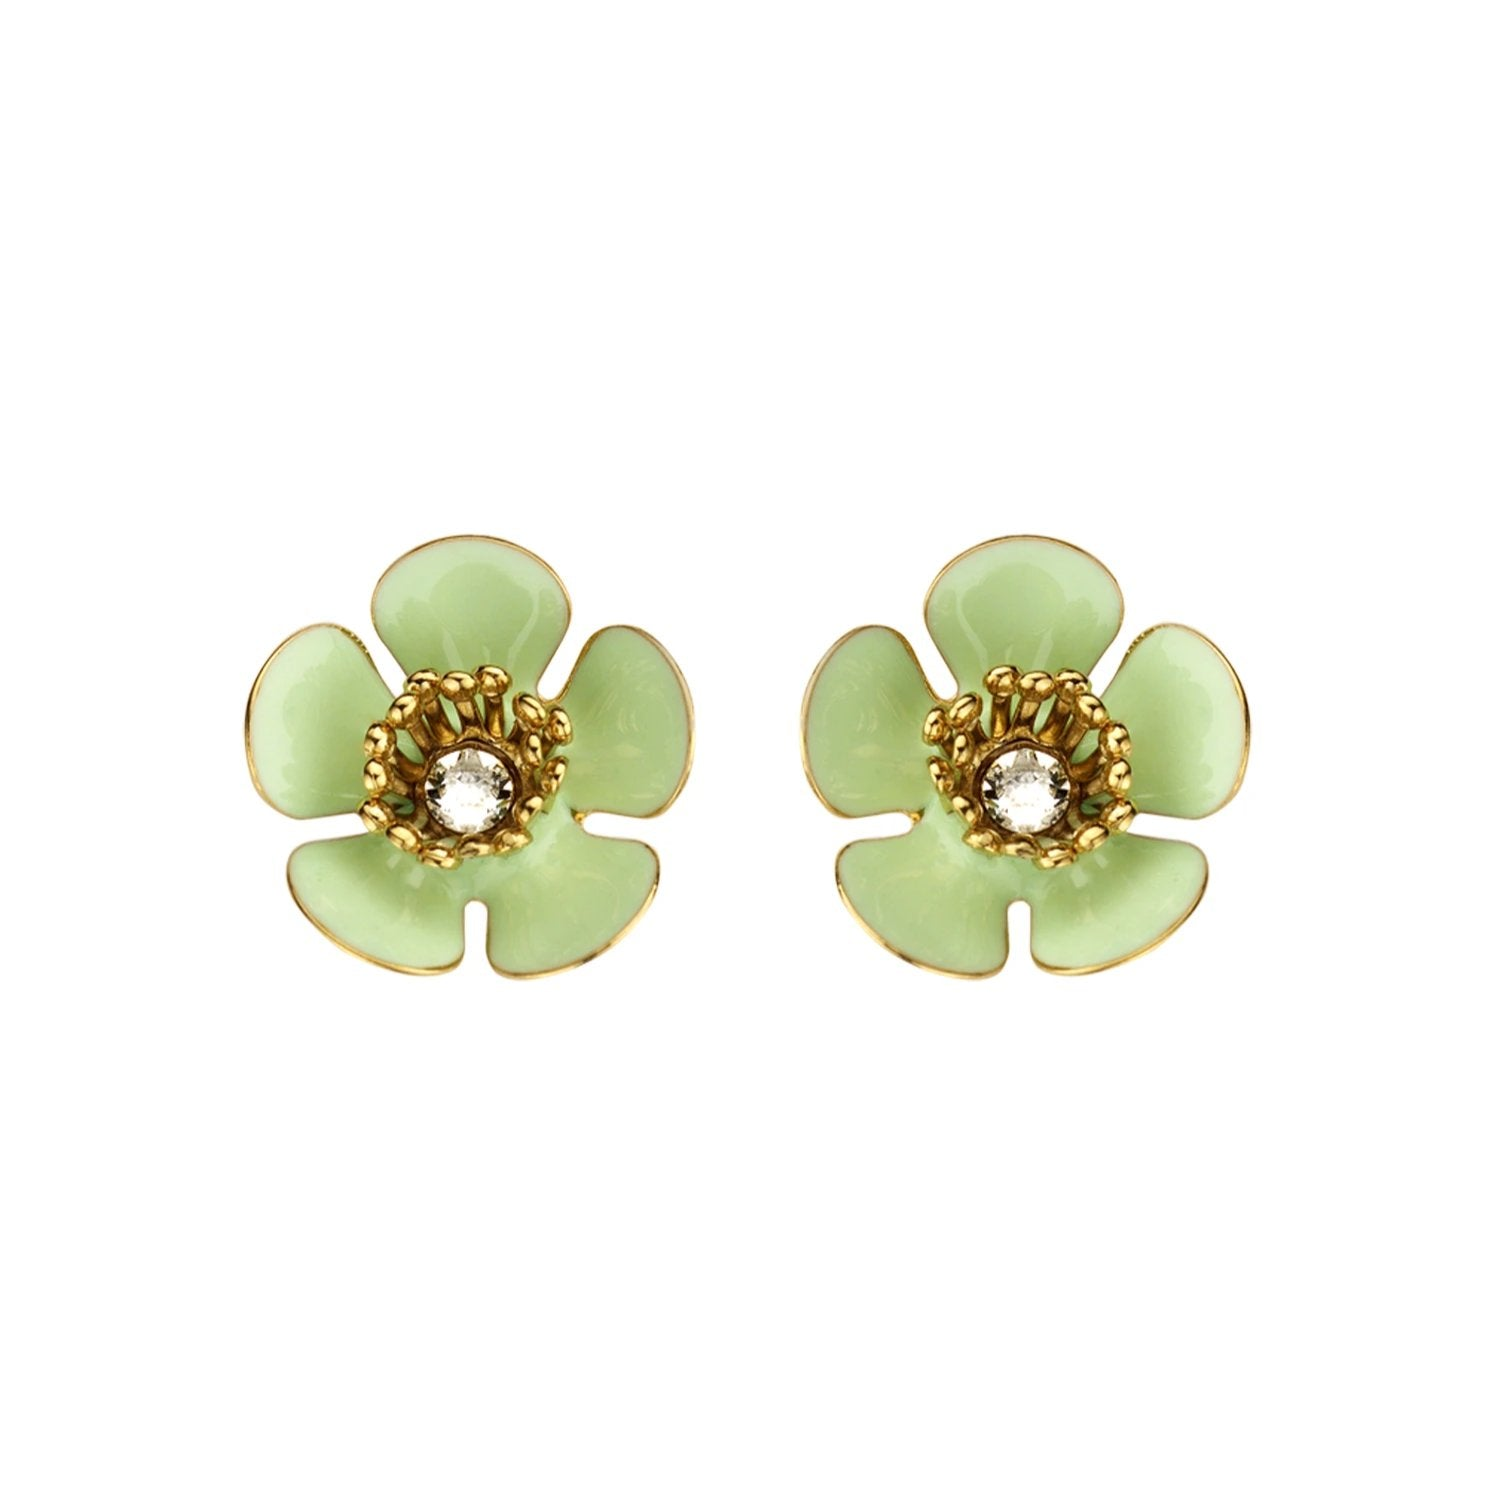 Gina mini enamel flower mint earrings - Souvenirs de Pomme